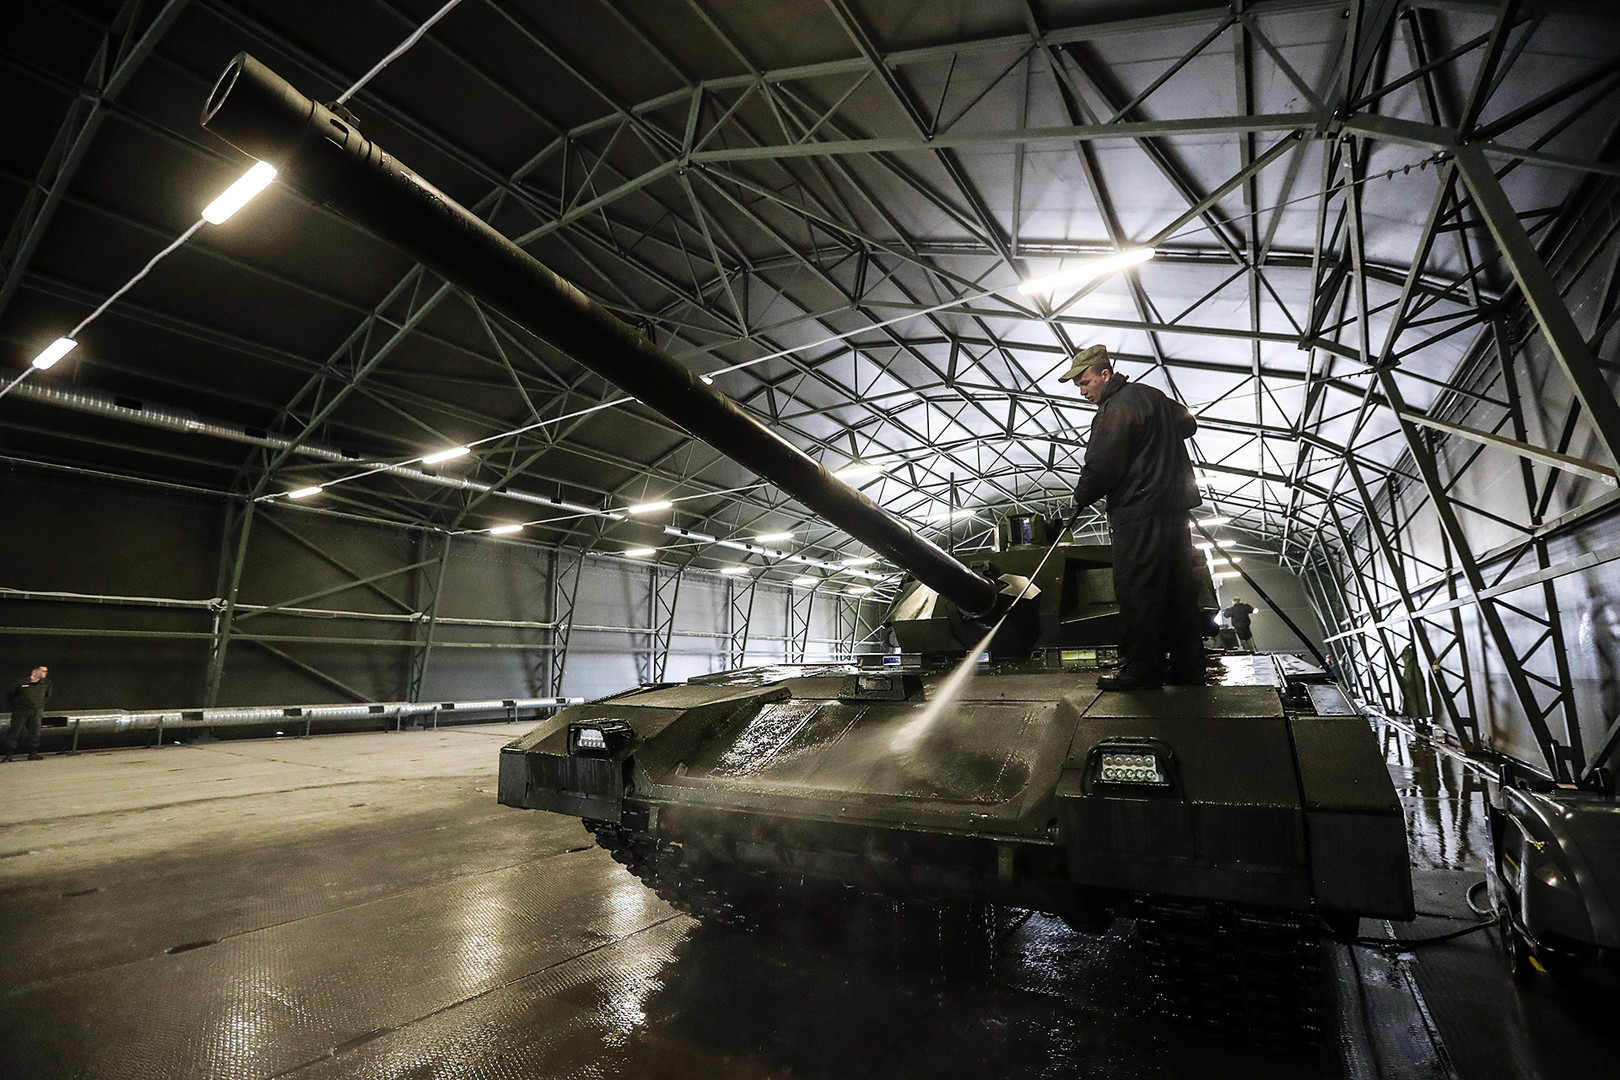 A serviceman washes a T-14 Armata battle tank at a service yard in Moscow's Nizhniye Mnevniki Street.